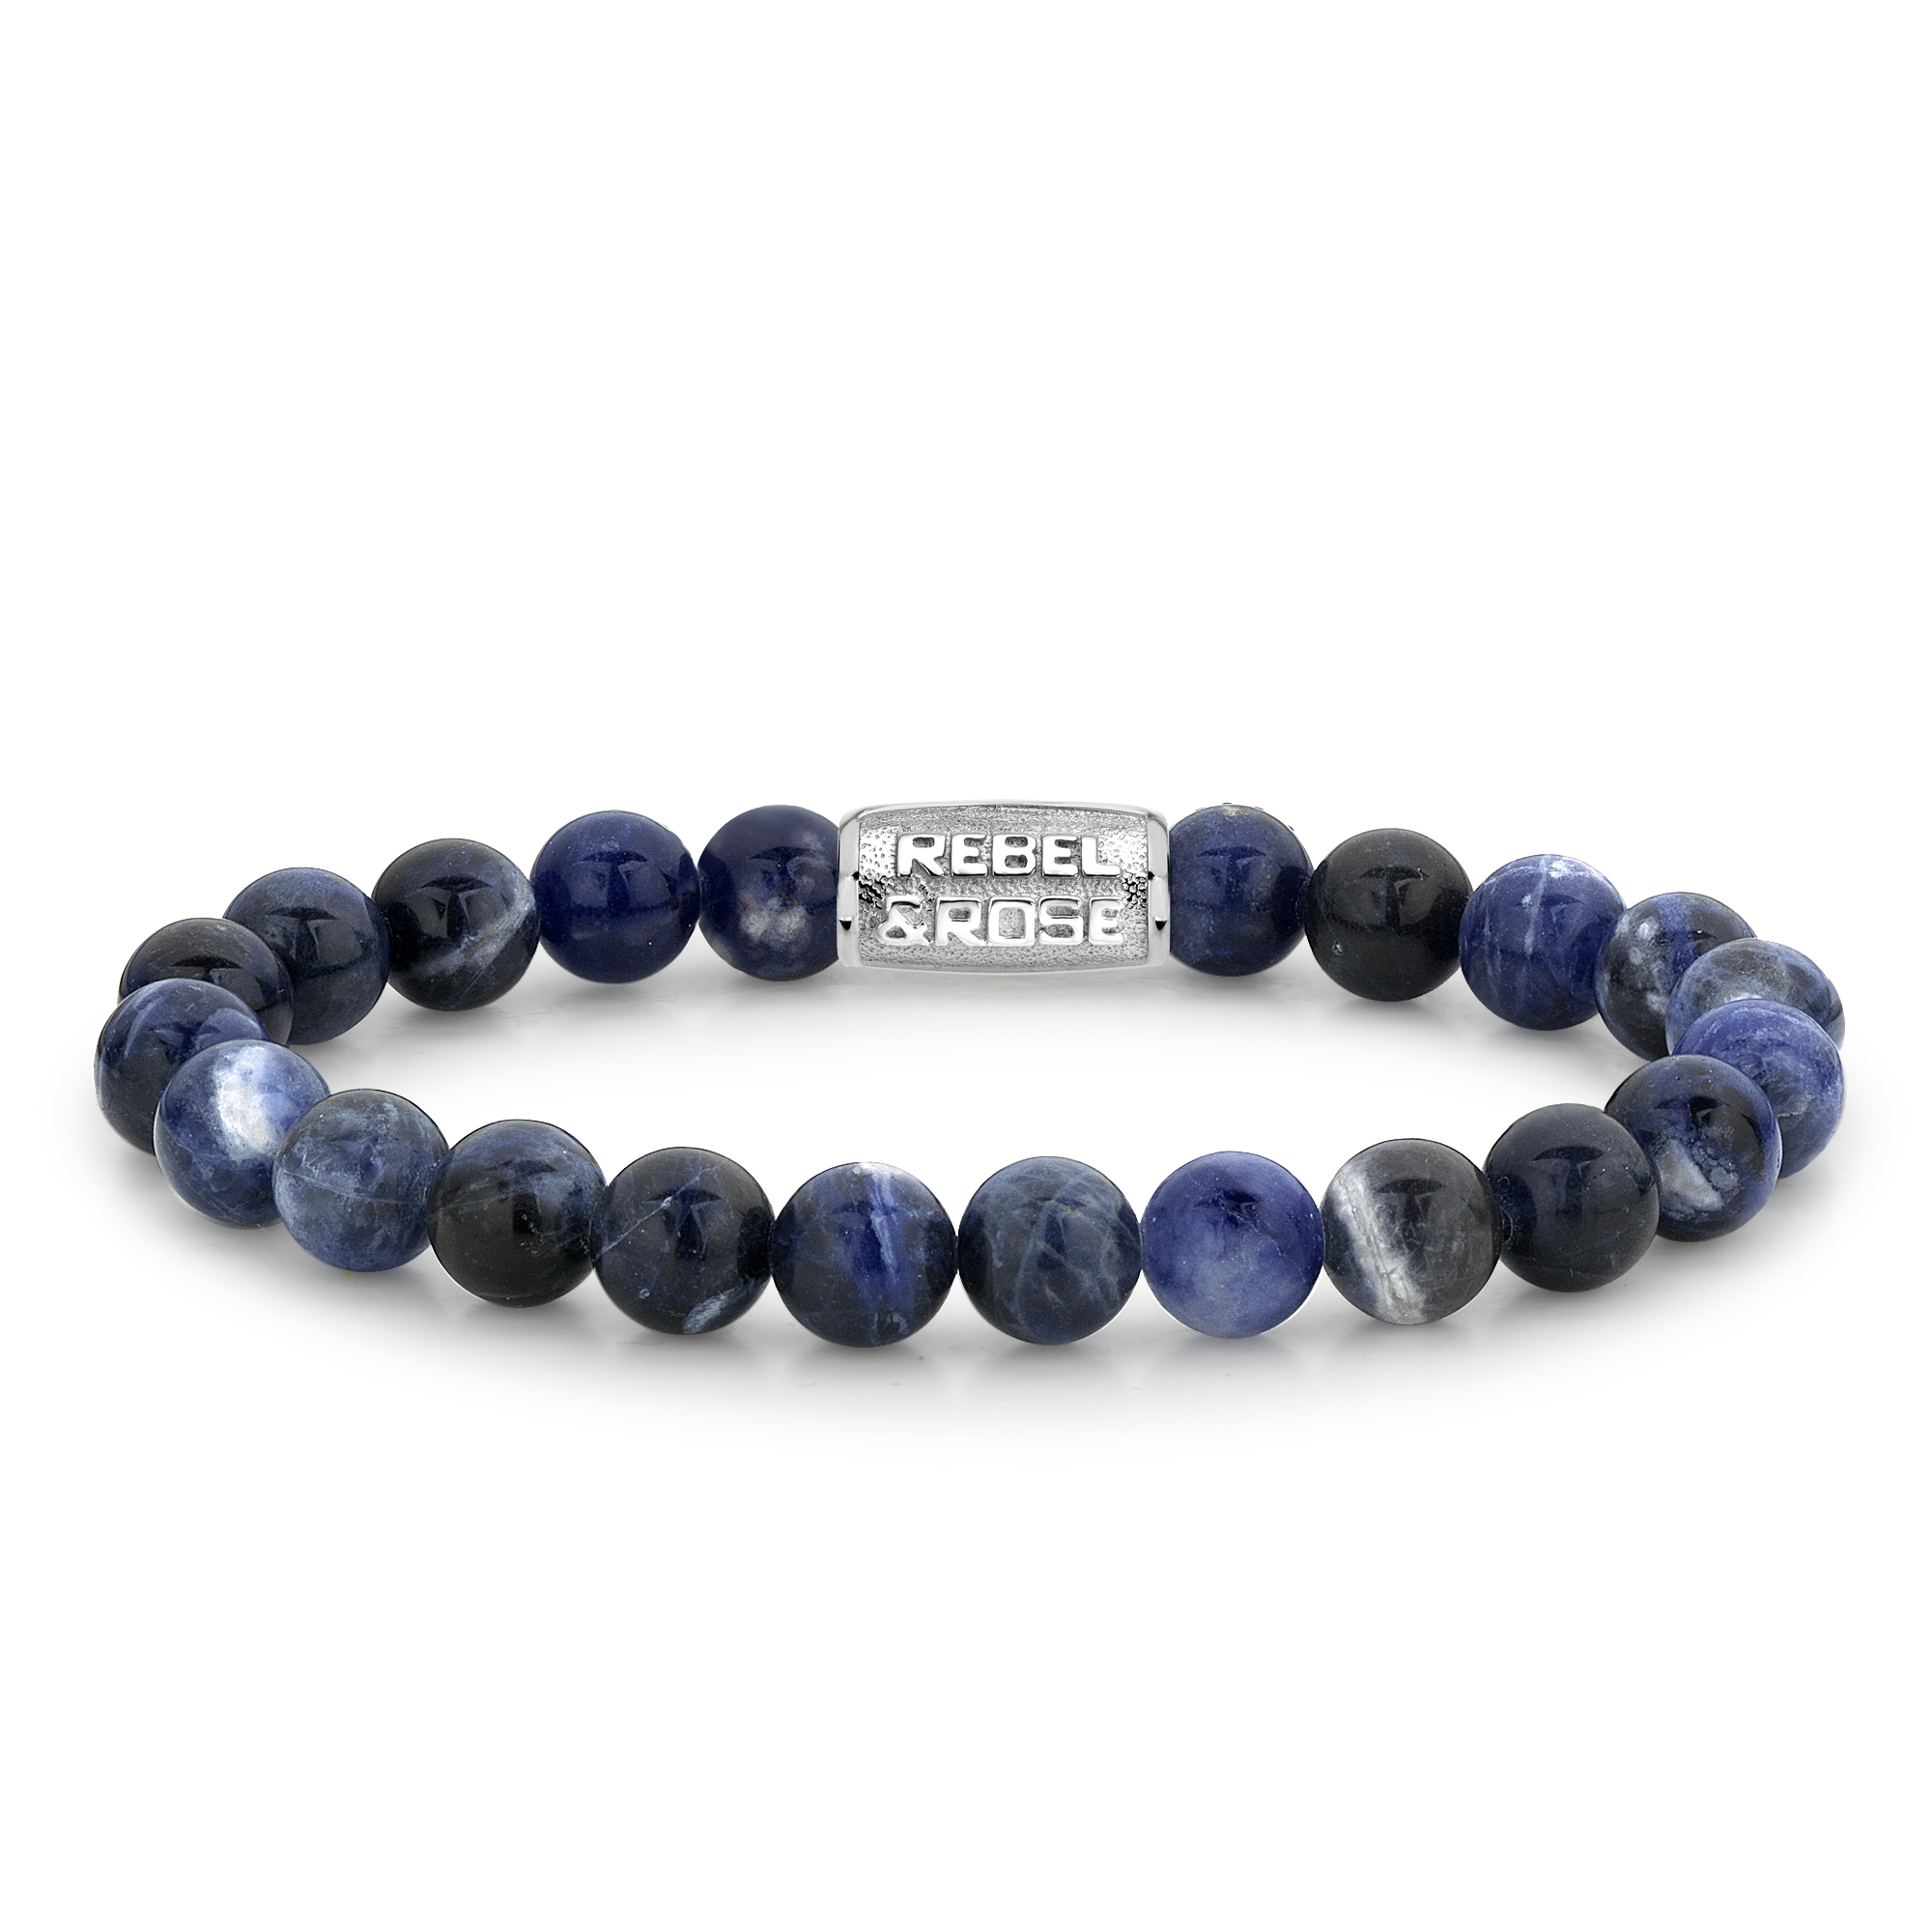 Rebel and Rose RR 80010 S Armband Midnight Blue 8 mm blauw zilver 21 cm